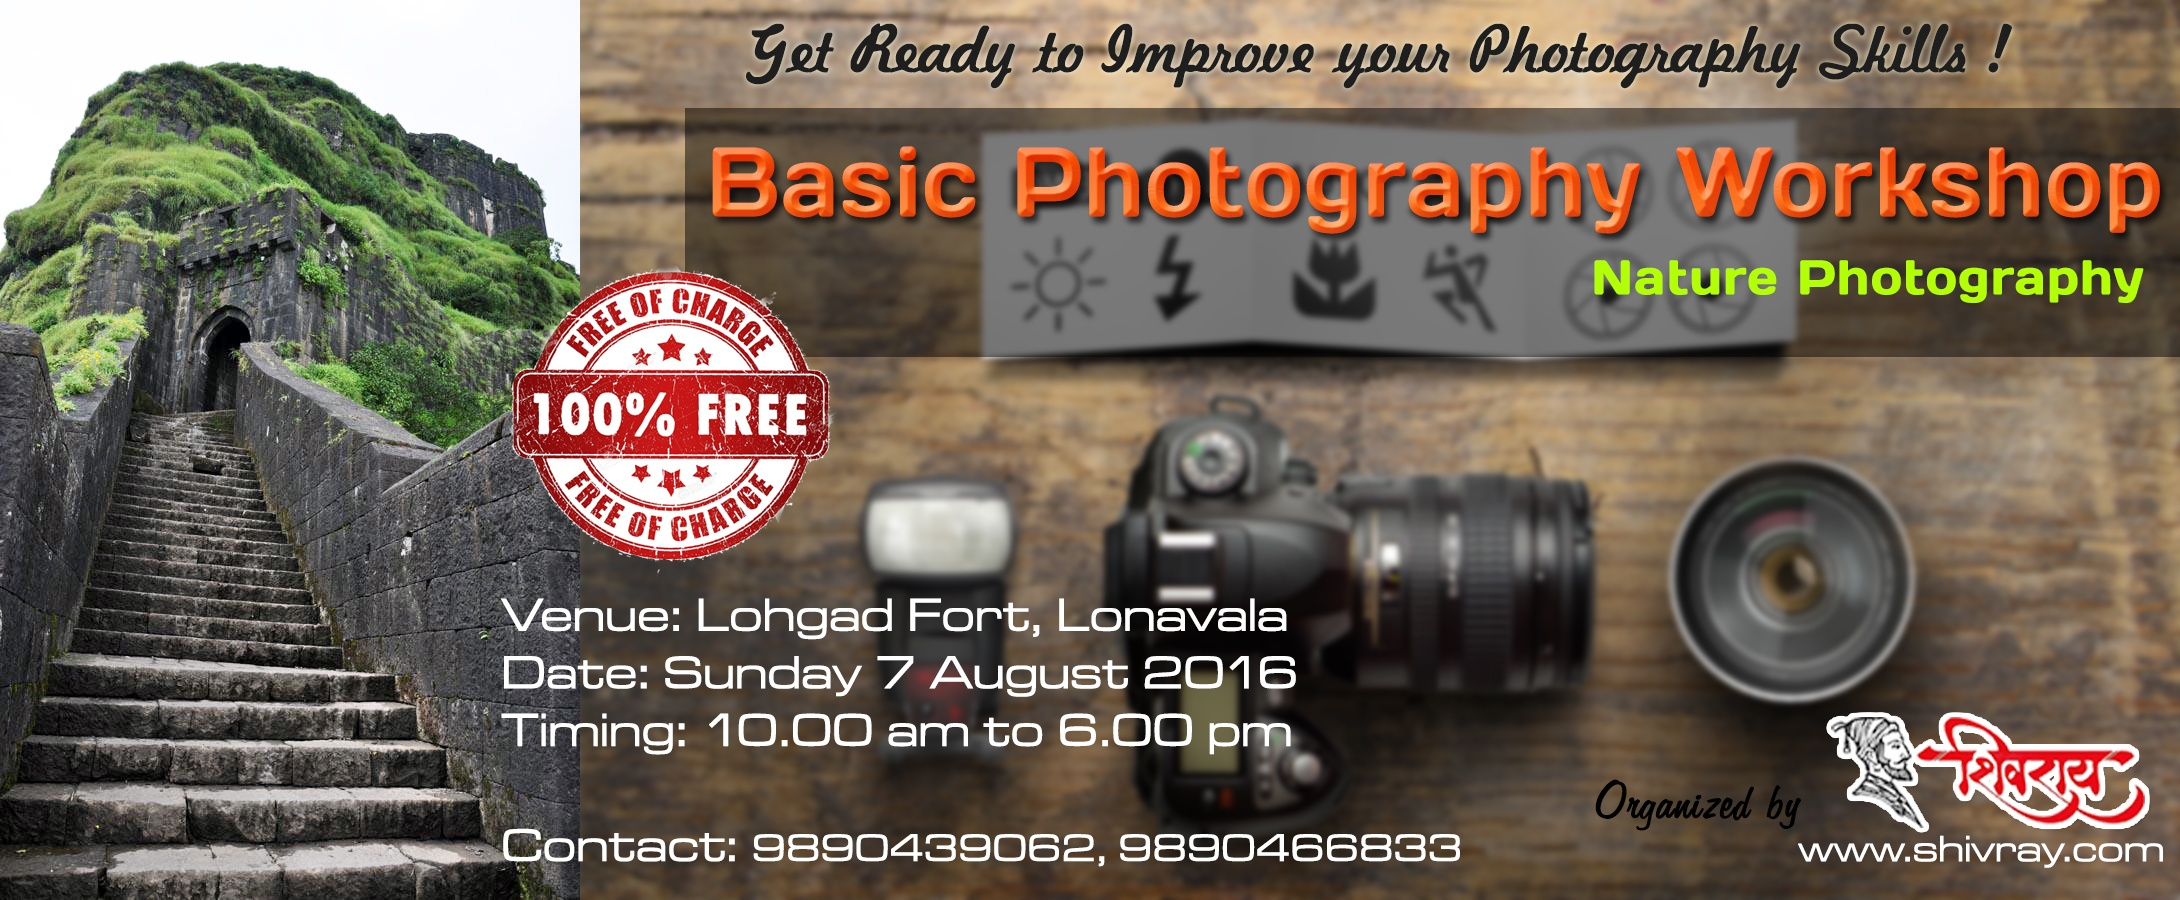 free photography workshop at lohagad